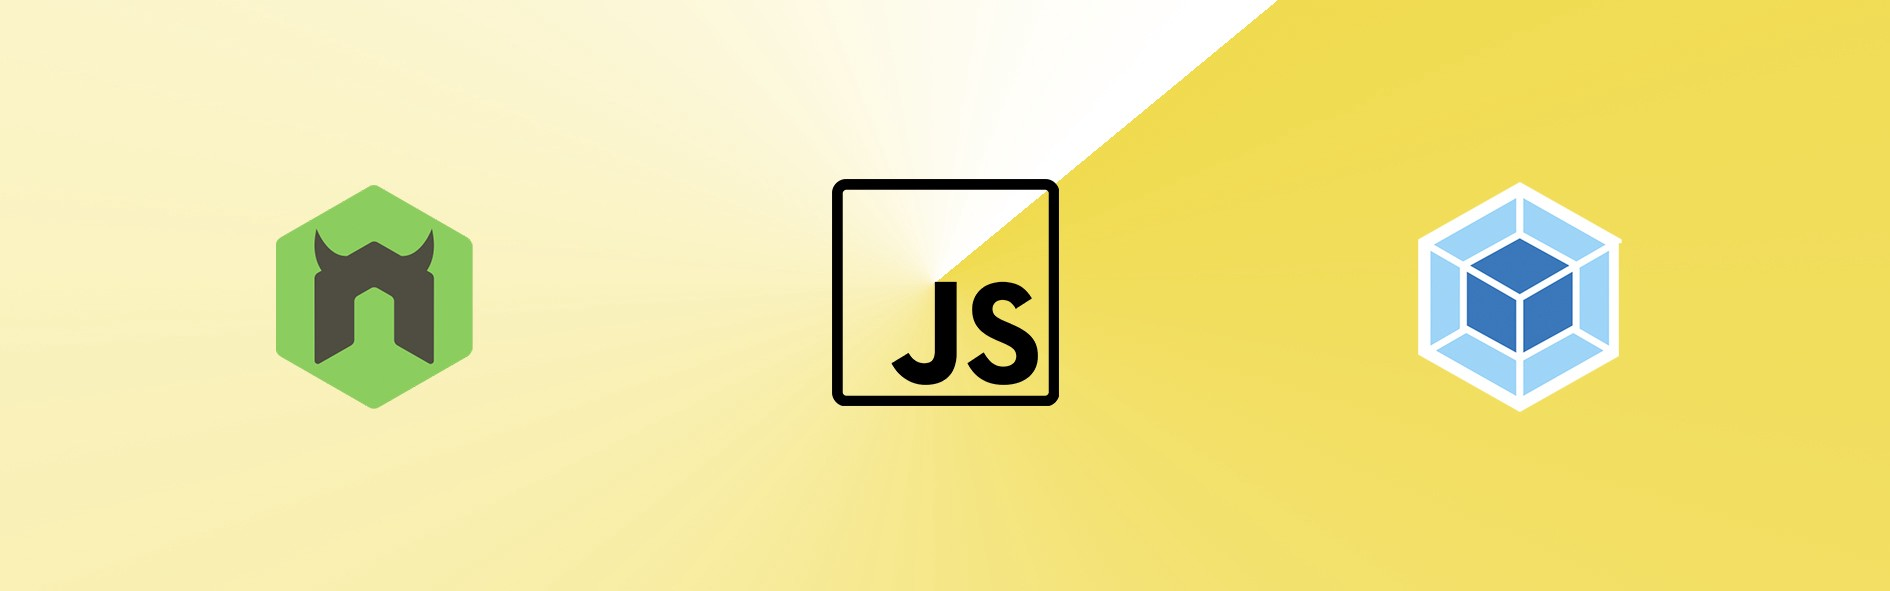 How to Auto reload a full-stack JavaScript project using